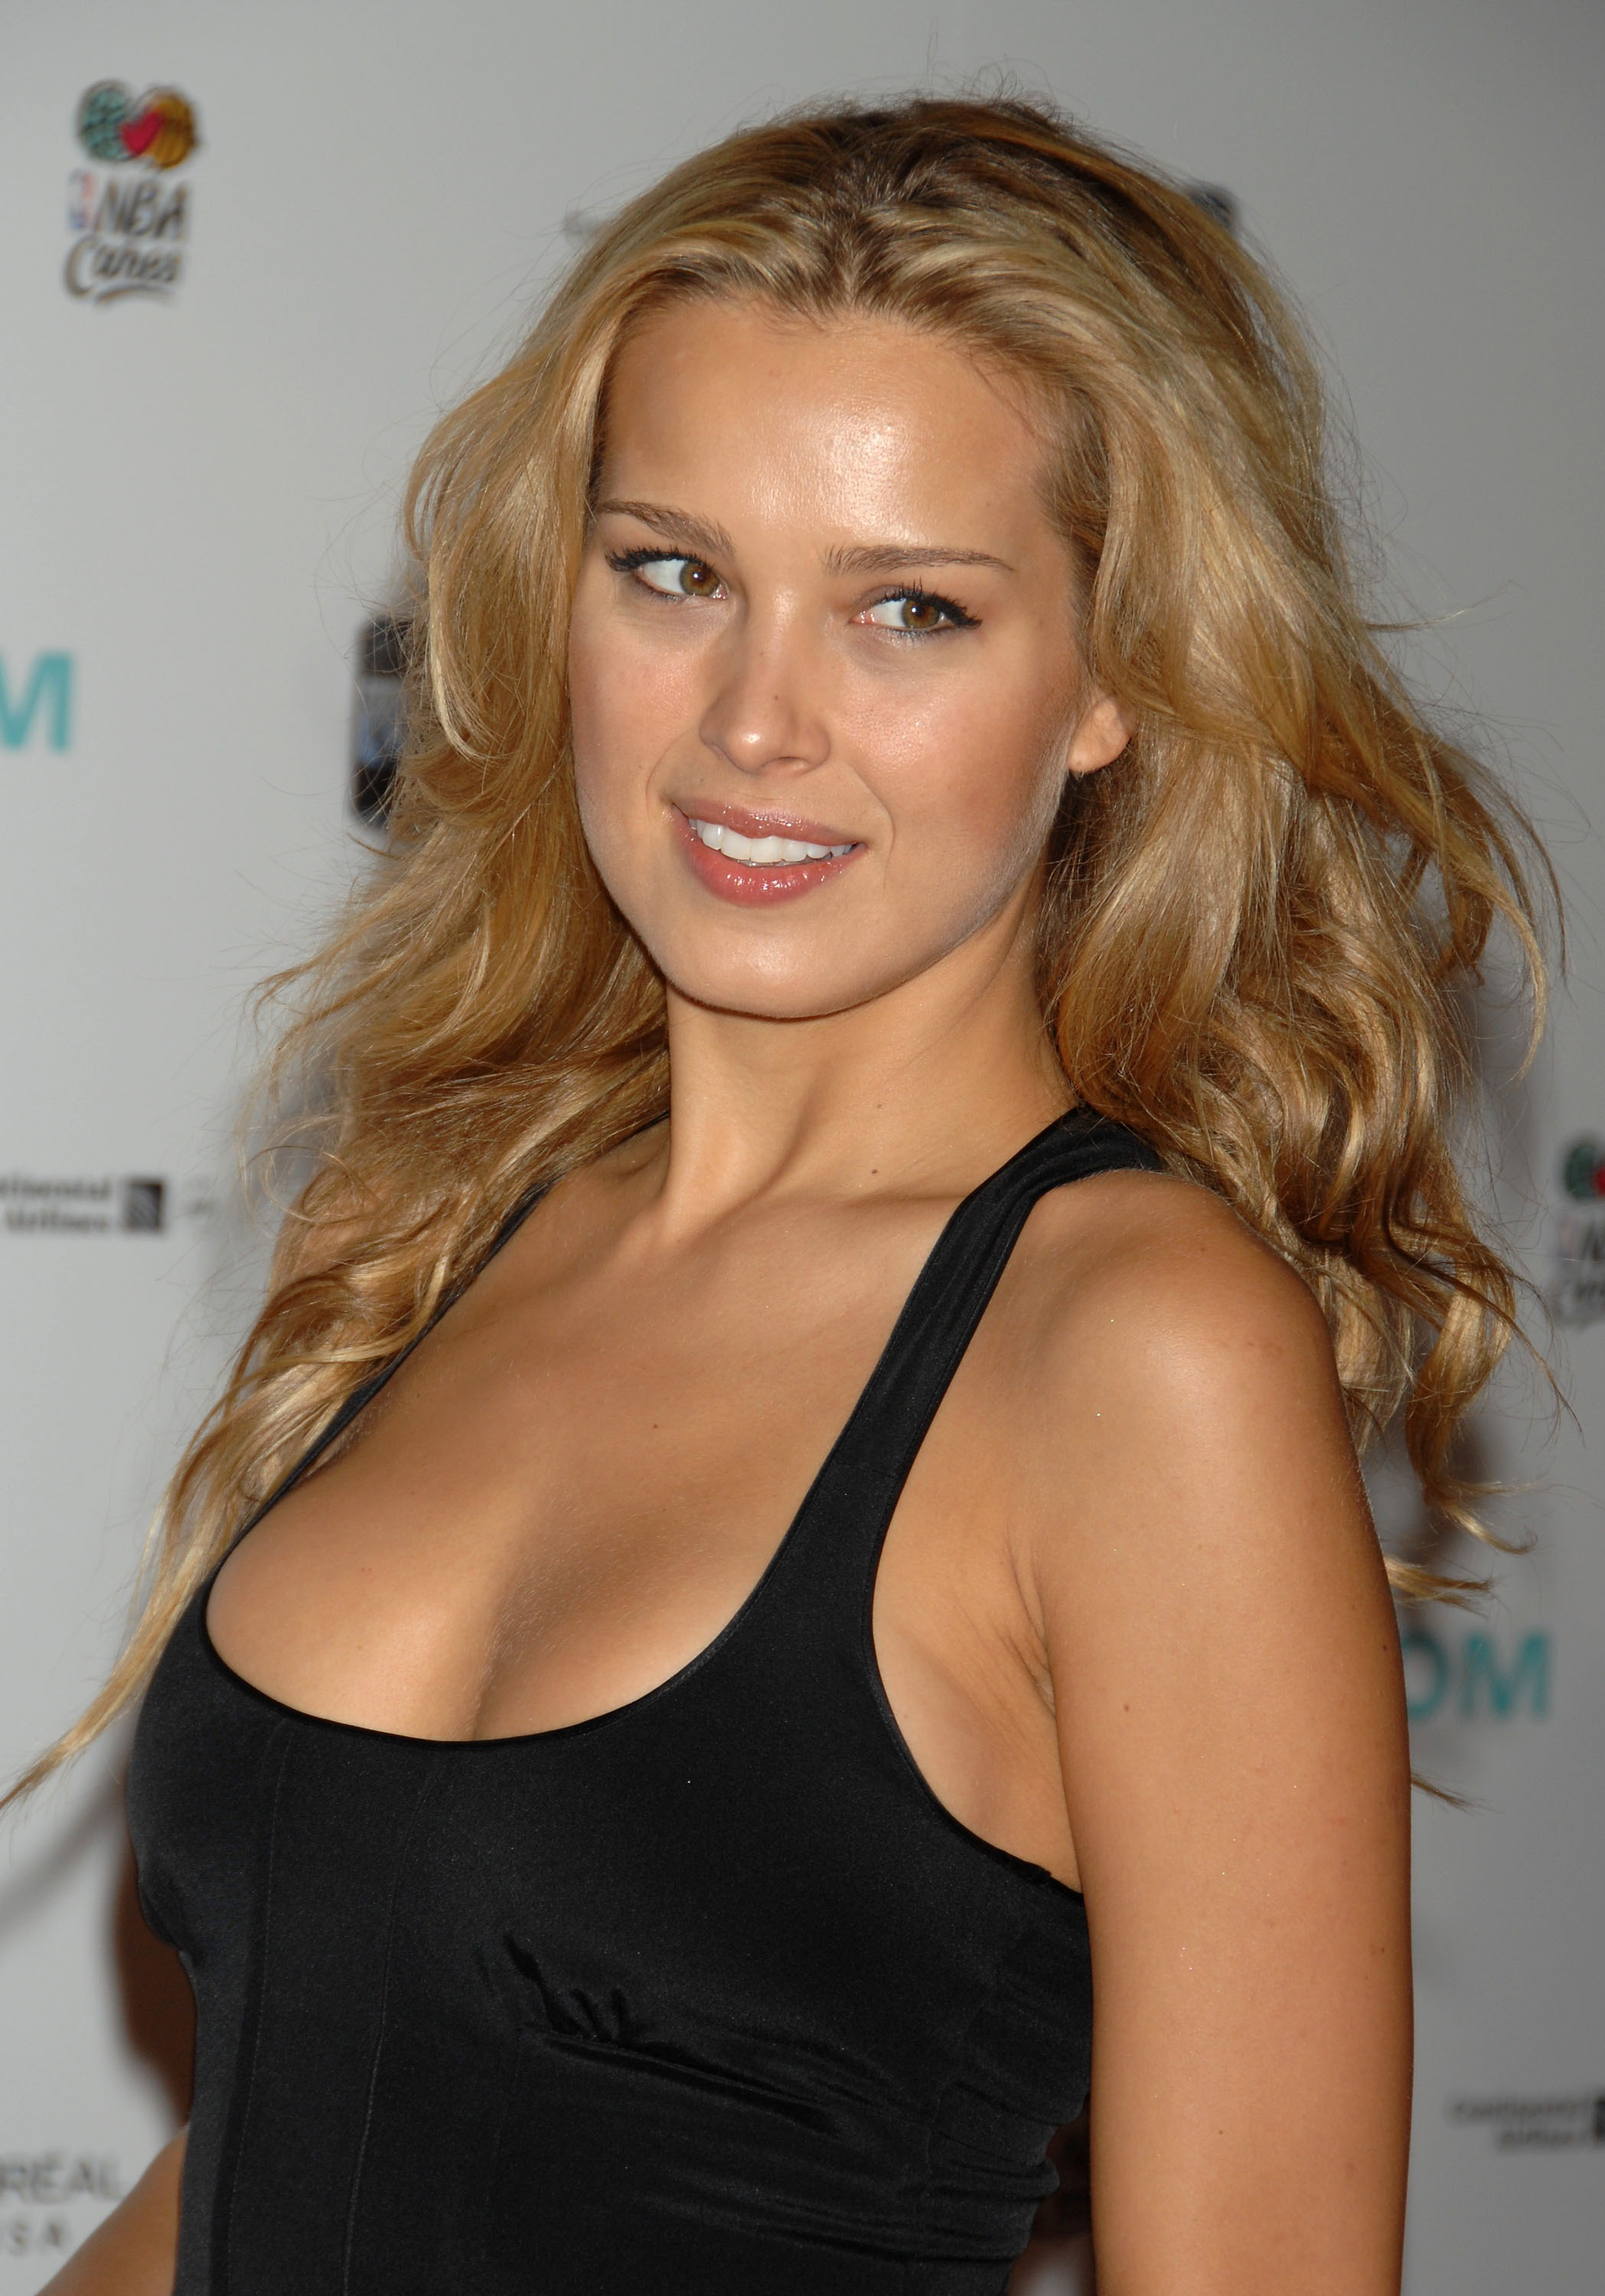 13179_celeb-city.eu_Petra_Nemcova_The_Dream_Concert_Backstage_09-18-2007_002_122_997lo.jpg